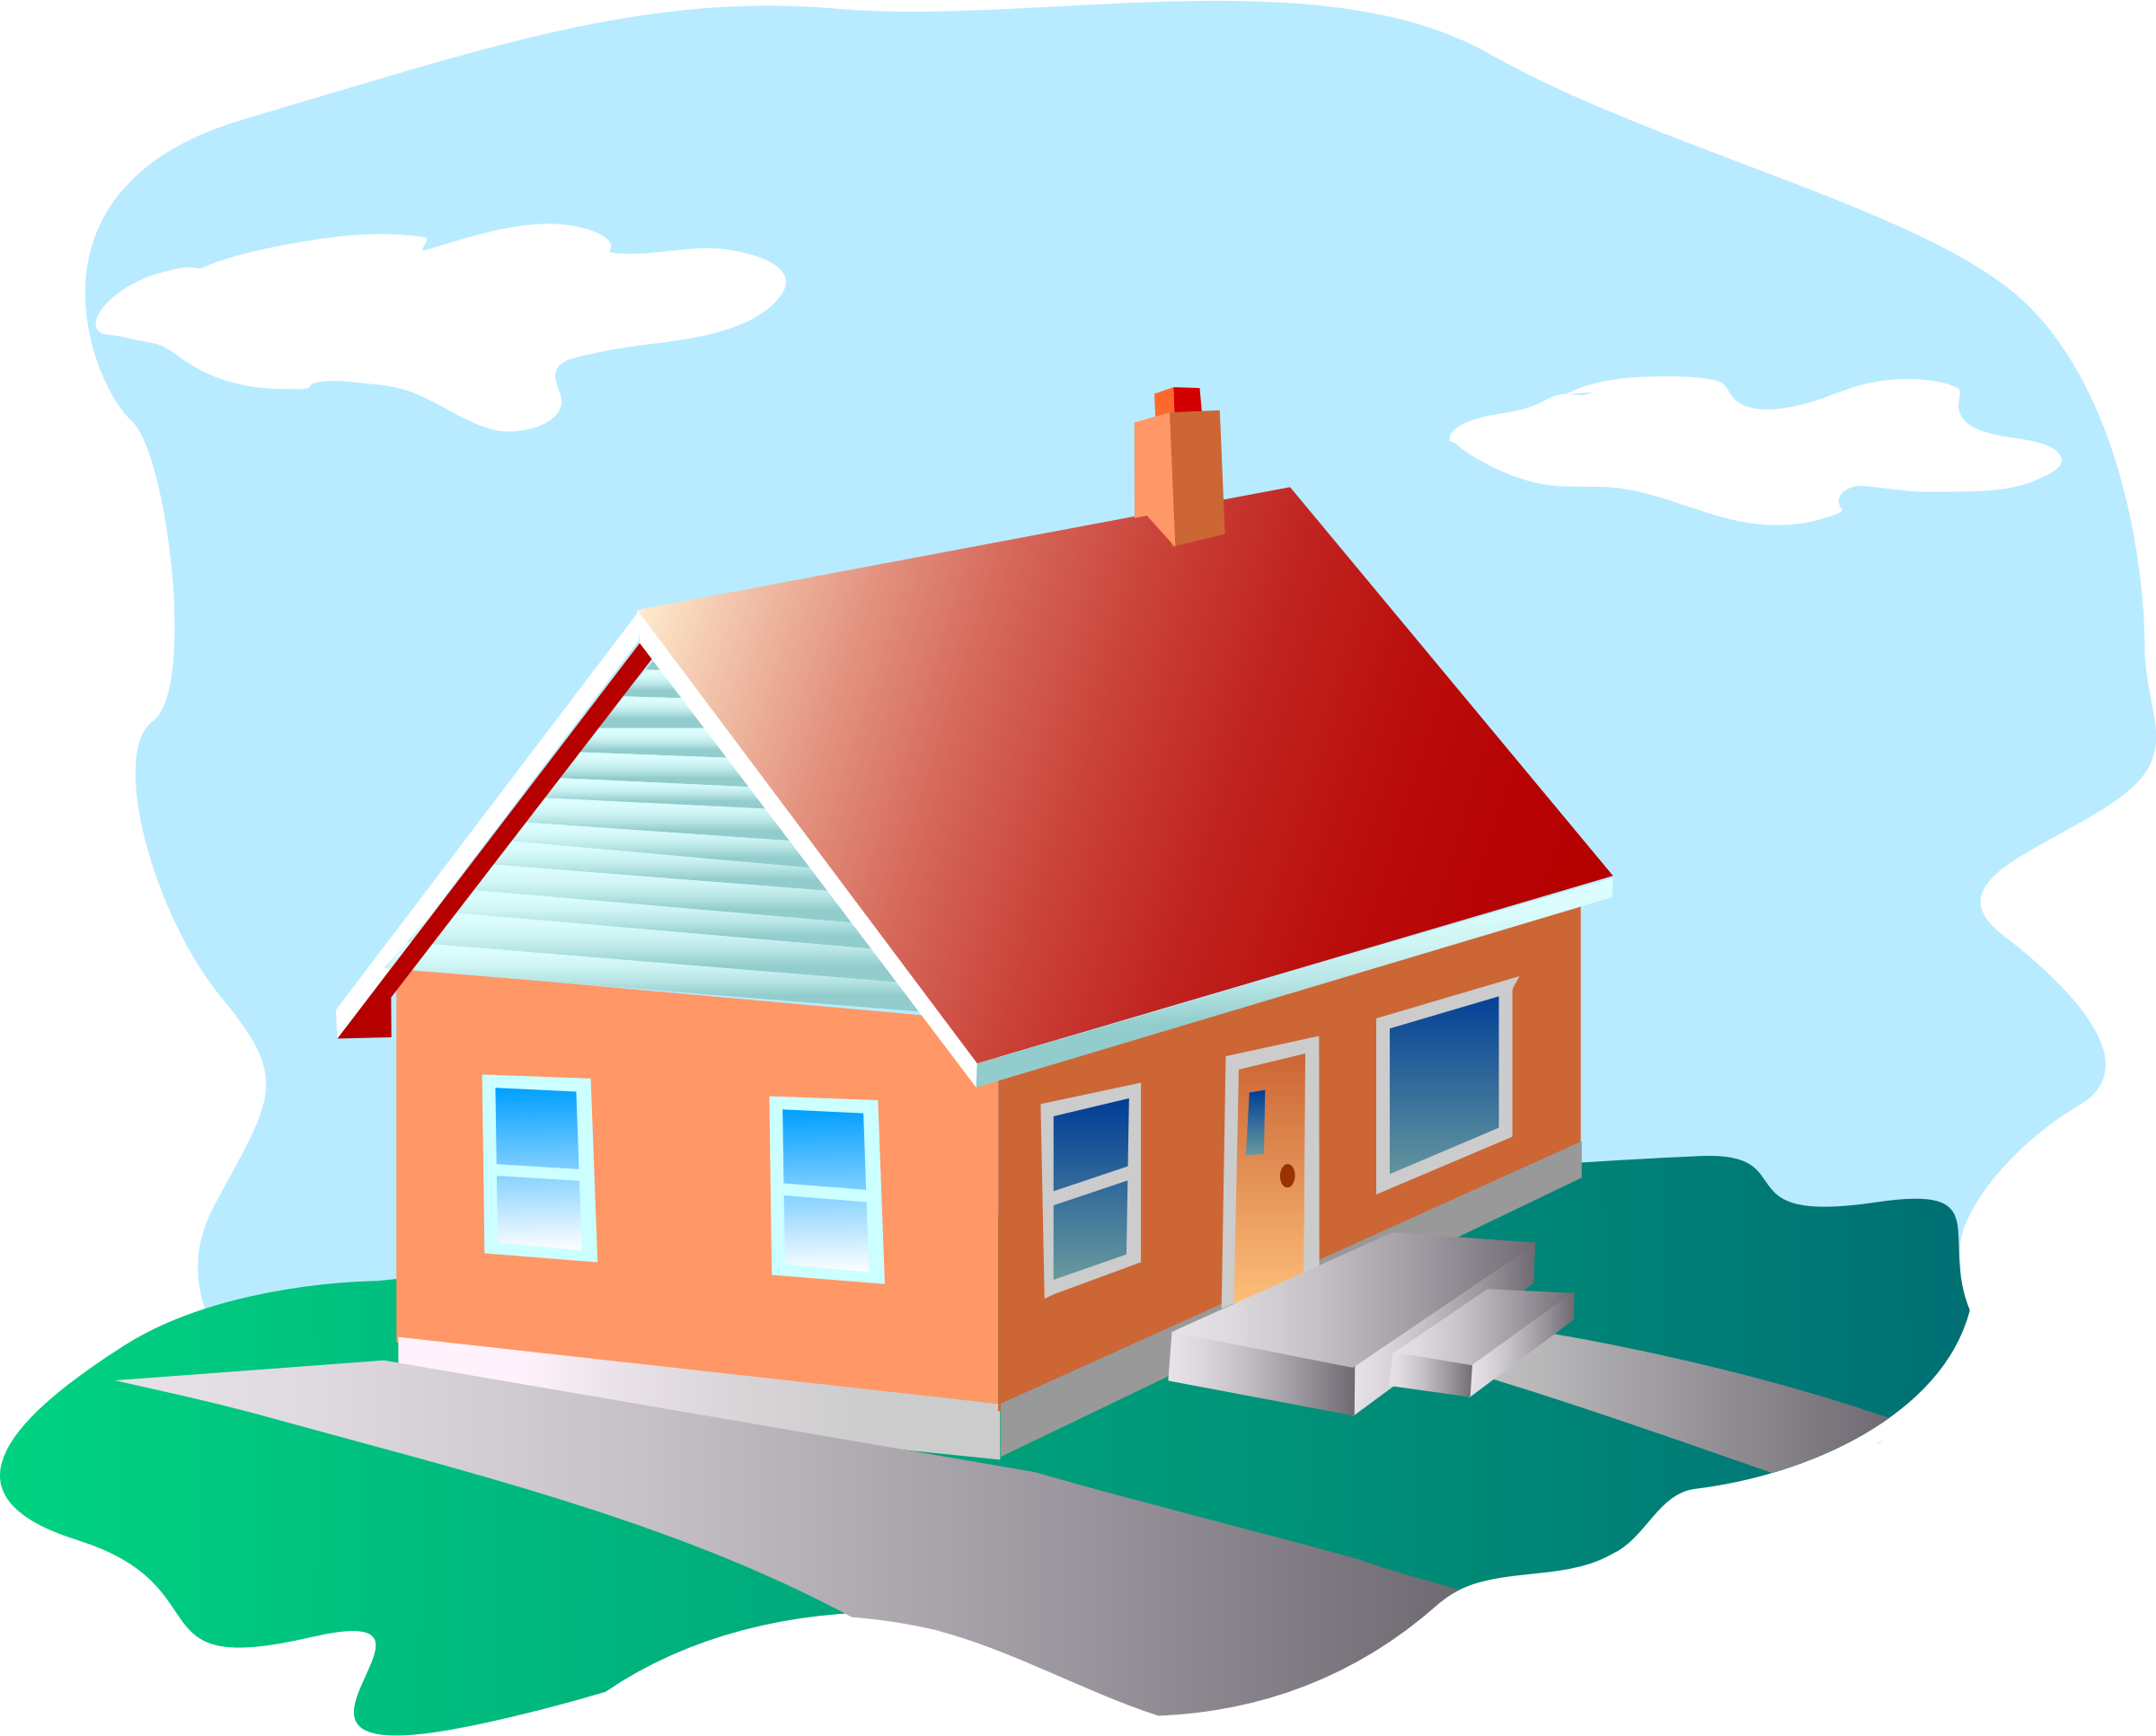 Clipart house big image. Homes vector clip art jpg transparent